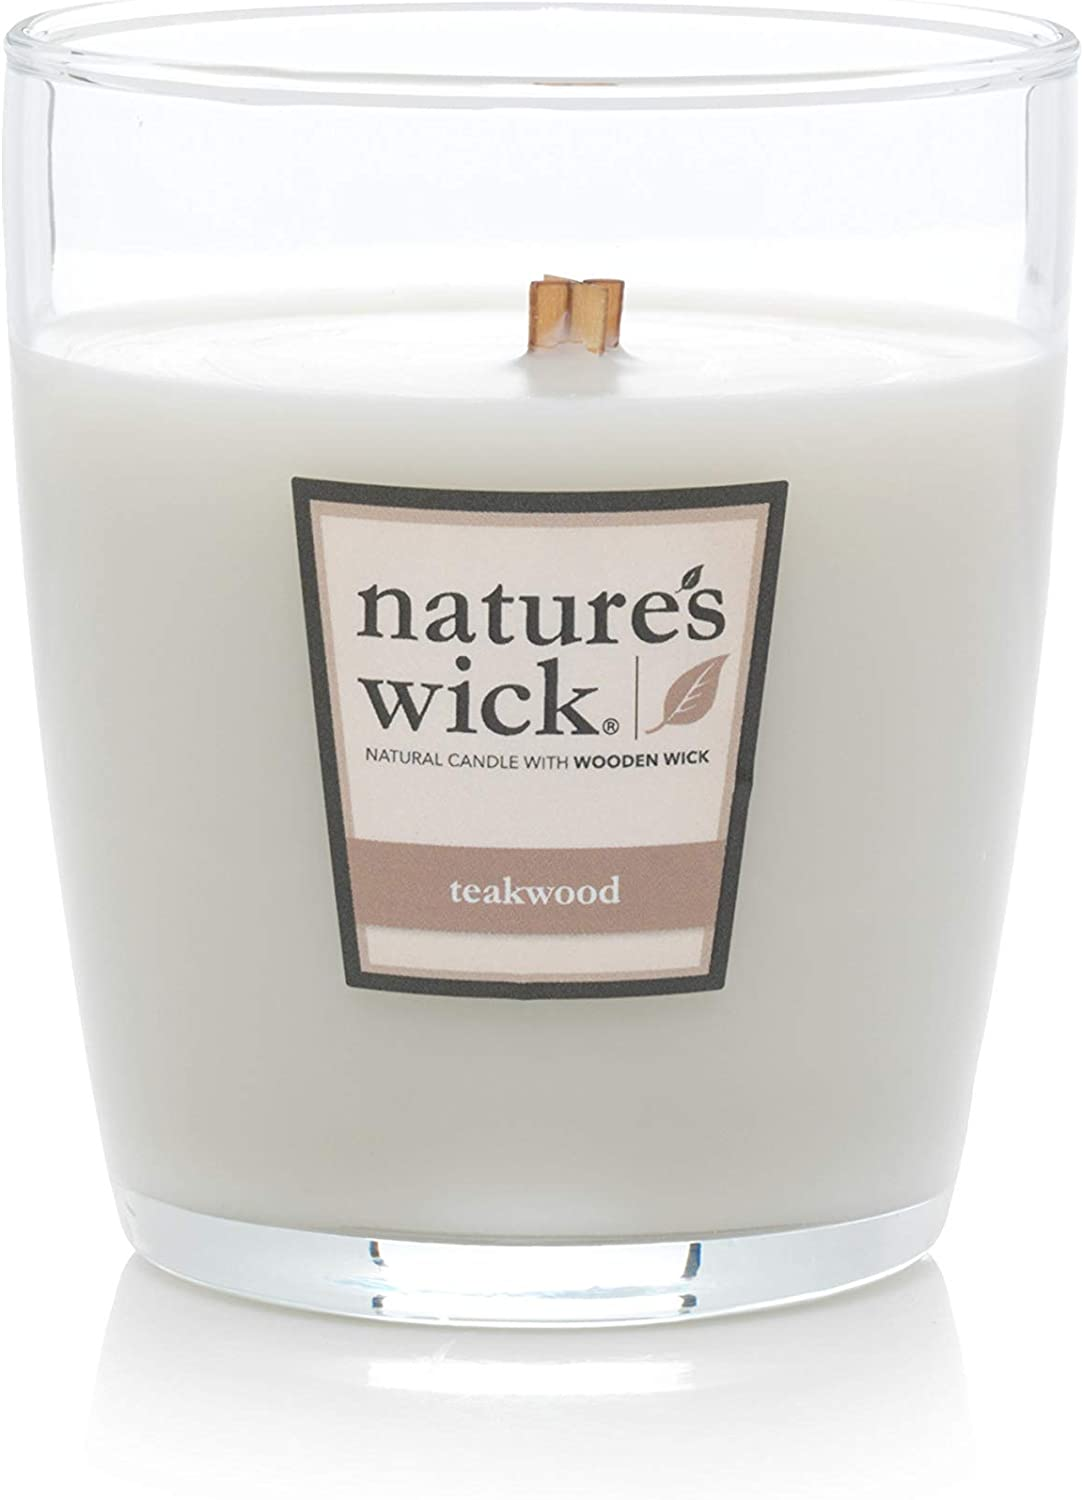 Jarred Natural Wood Wick Candle with up to 65 Hour Burn Time Teakwood Medium Natures Wick Scented 10 oz